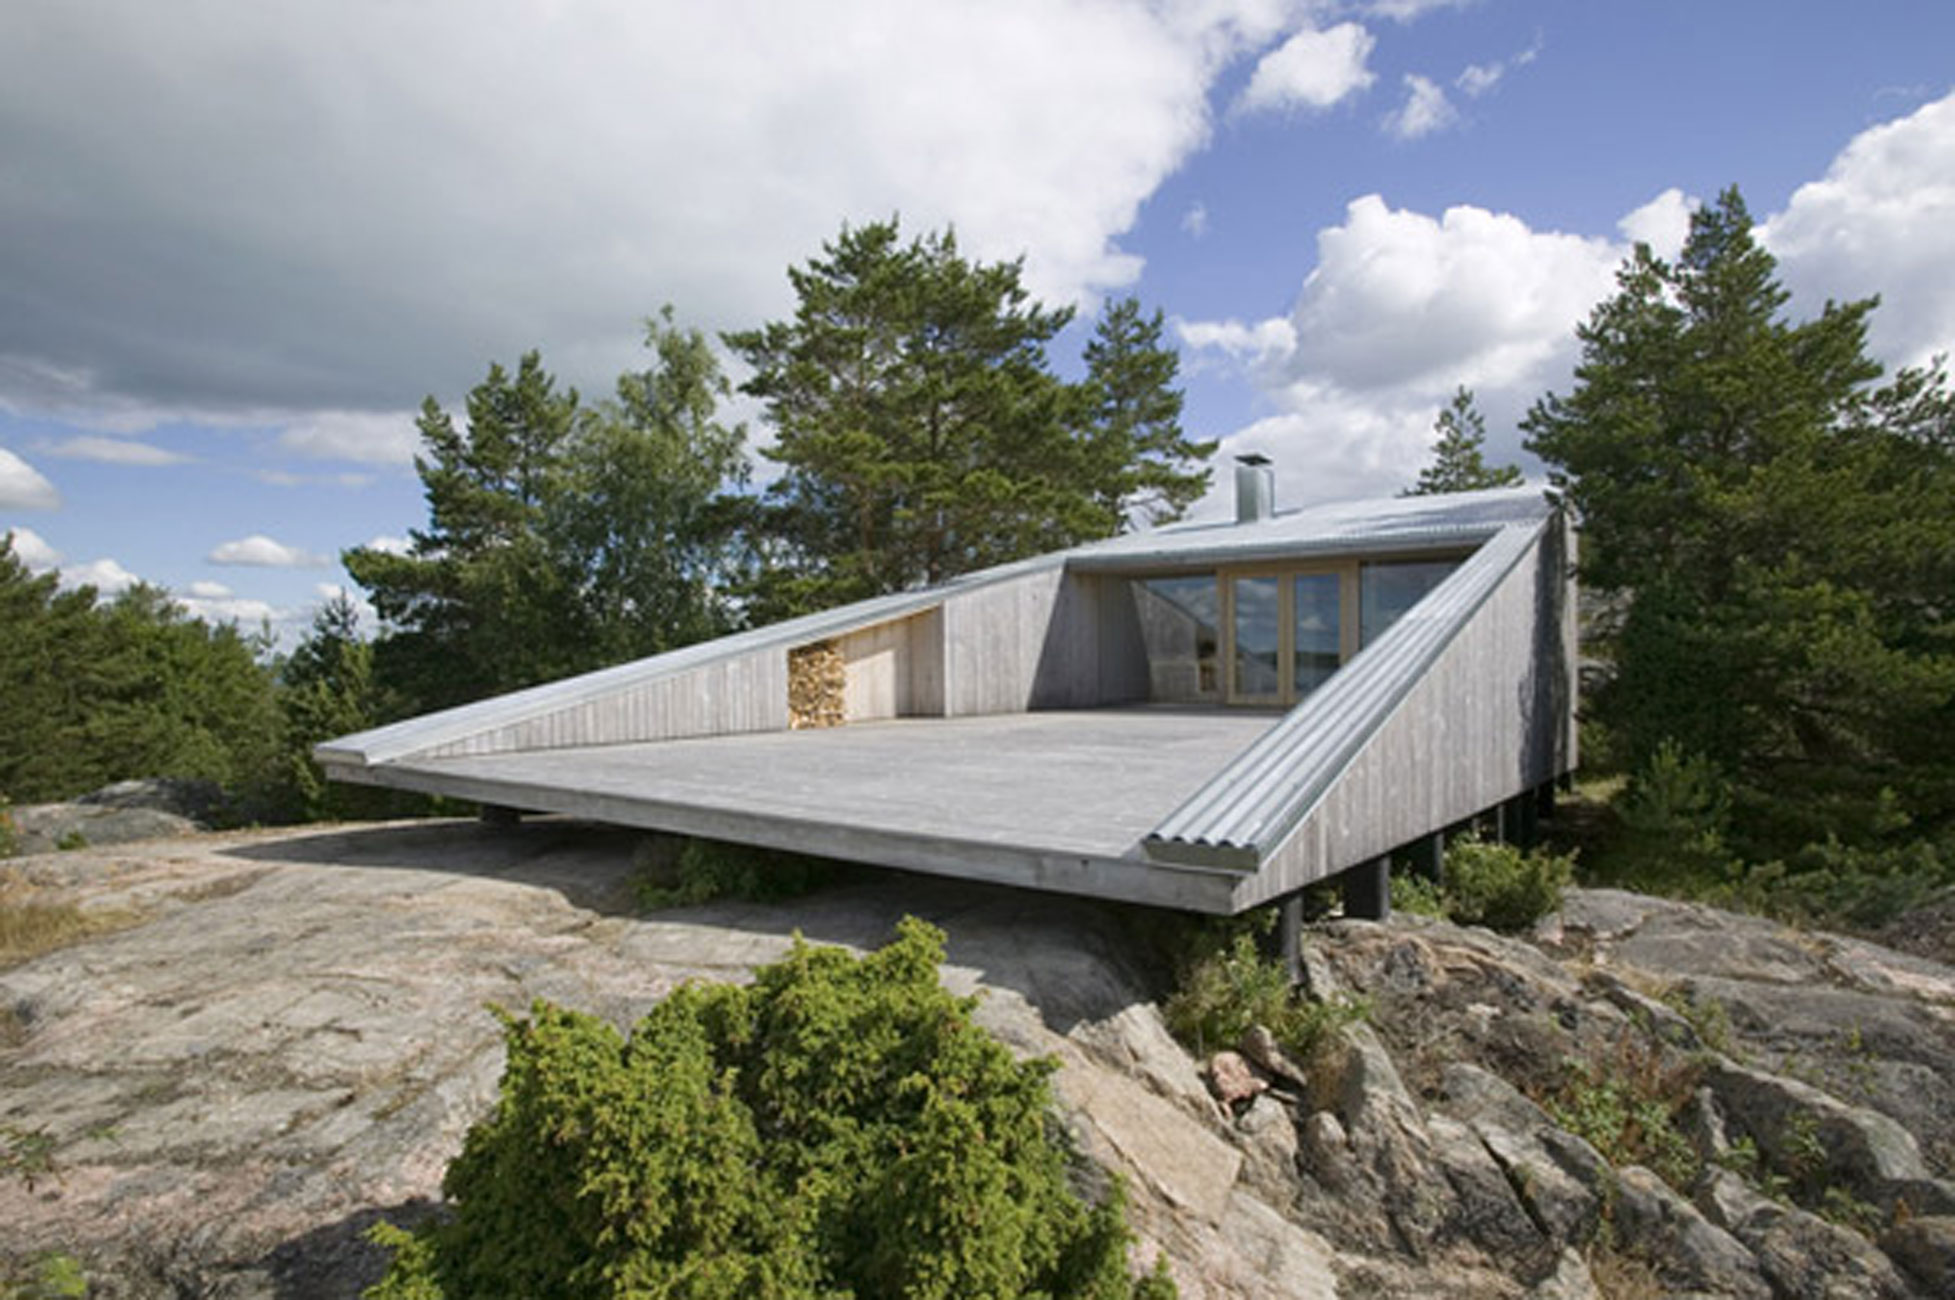 Lake house design with unusual architecture in finland for Lake home landscape design